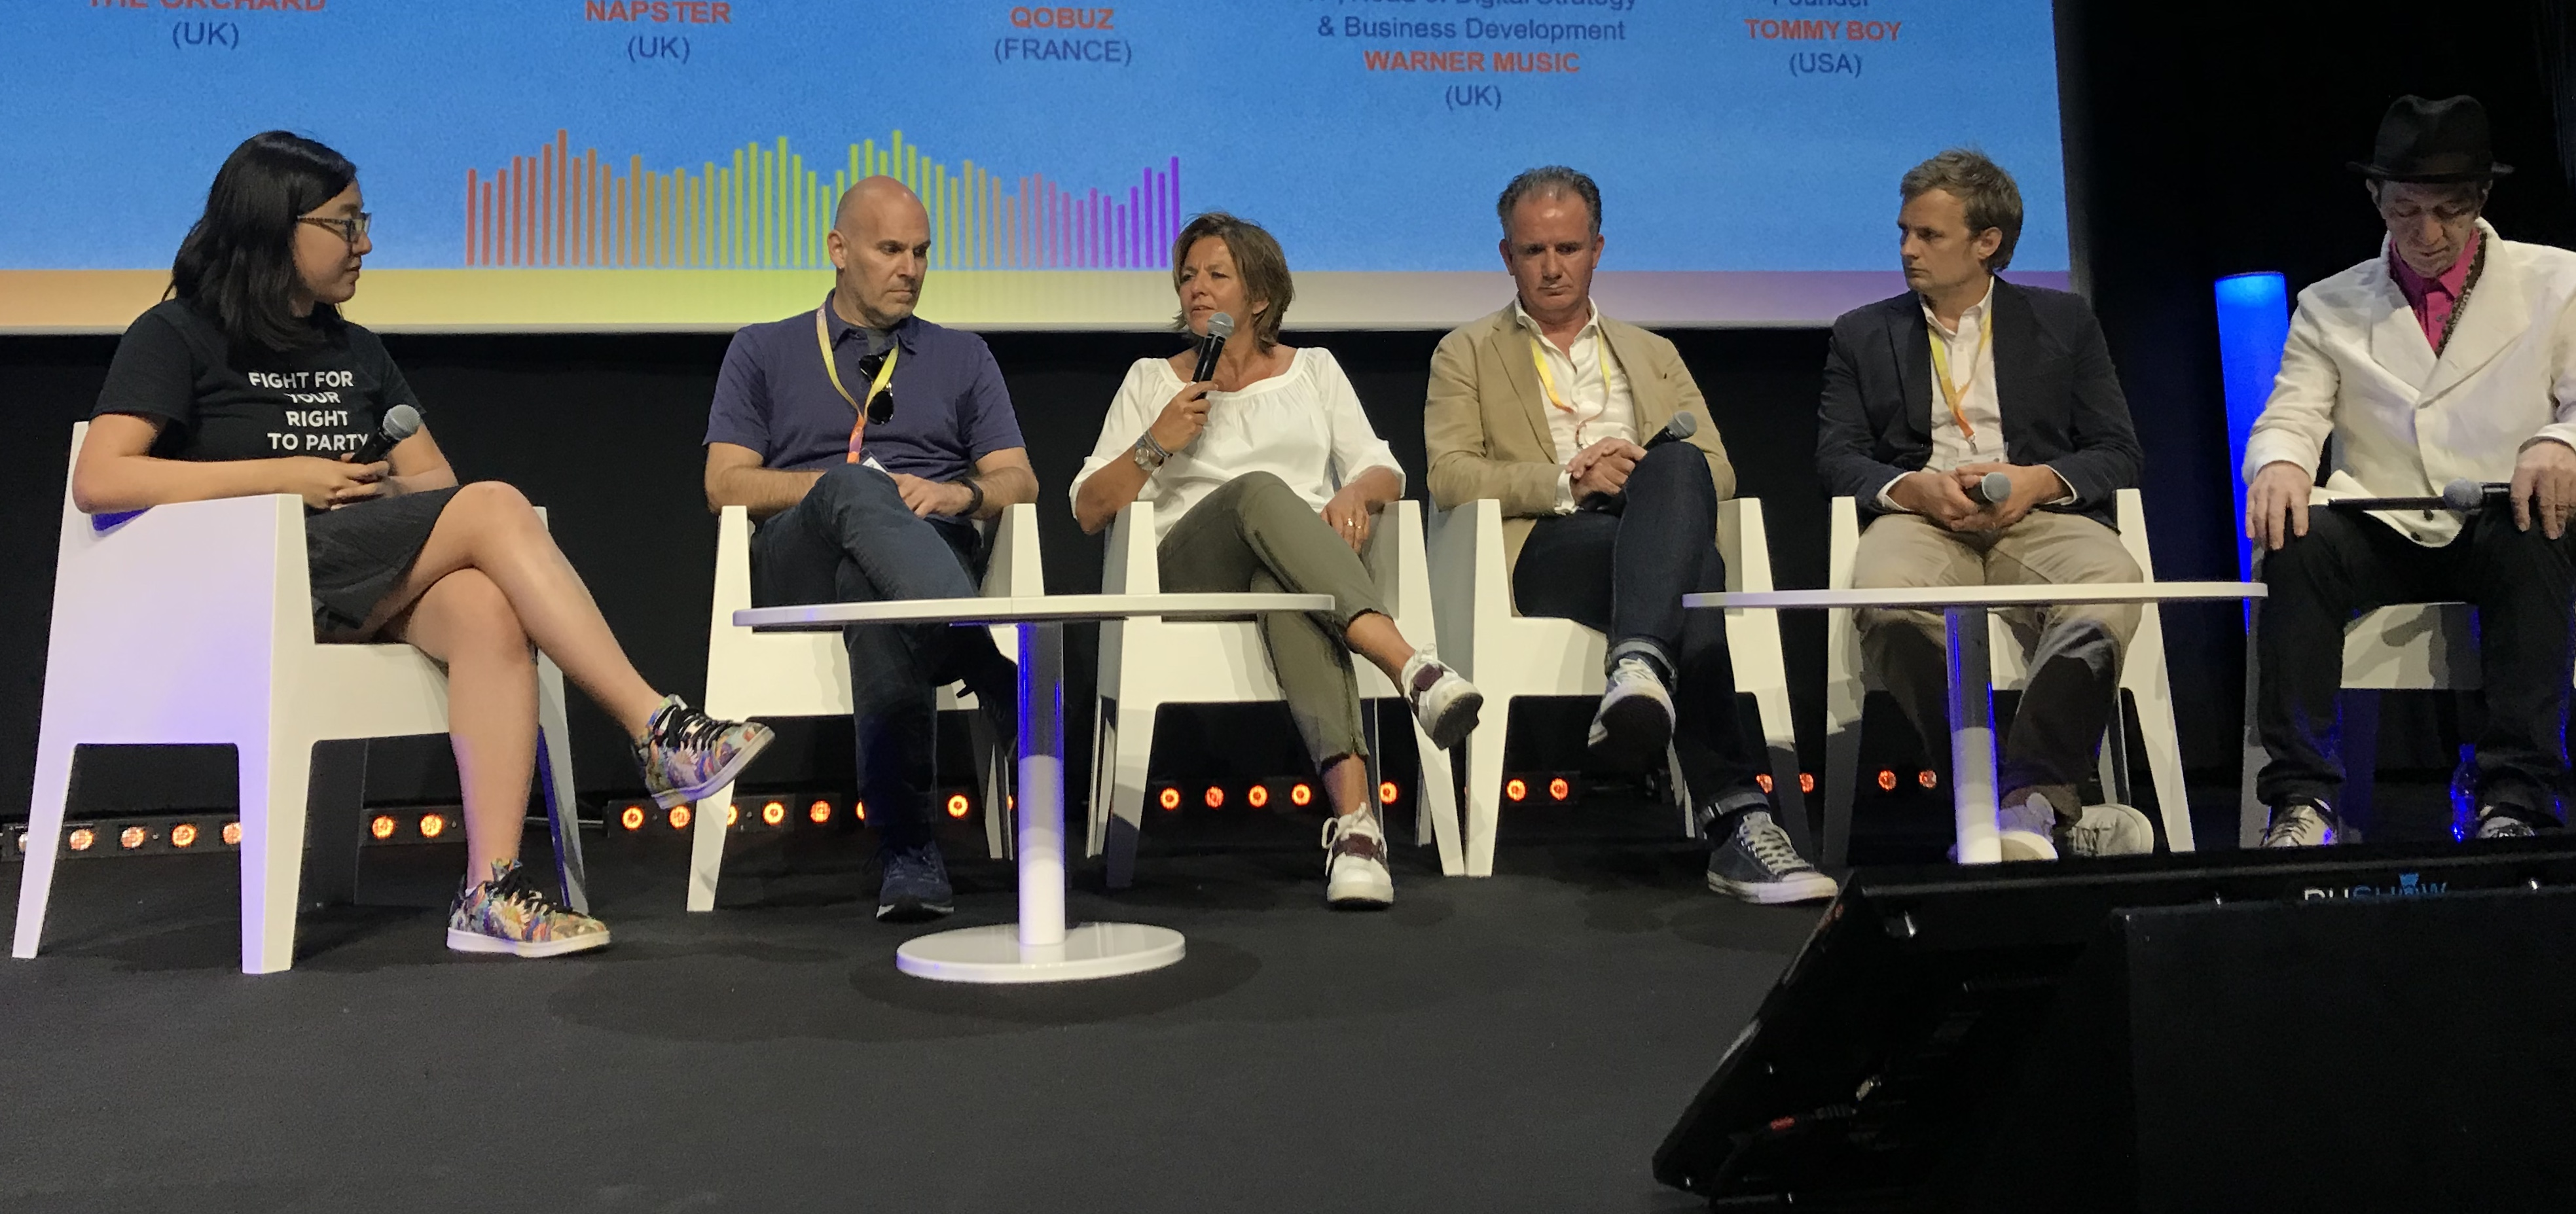 Music-streaming trends, from A&R to global/local evolution